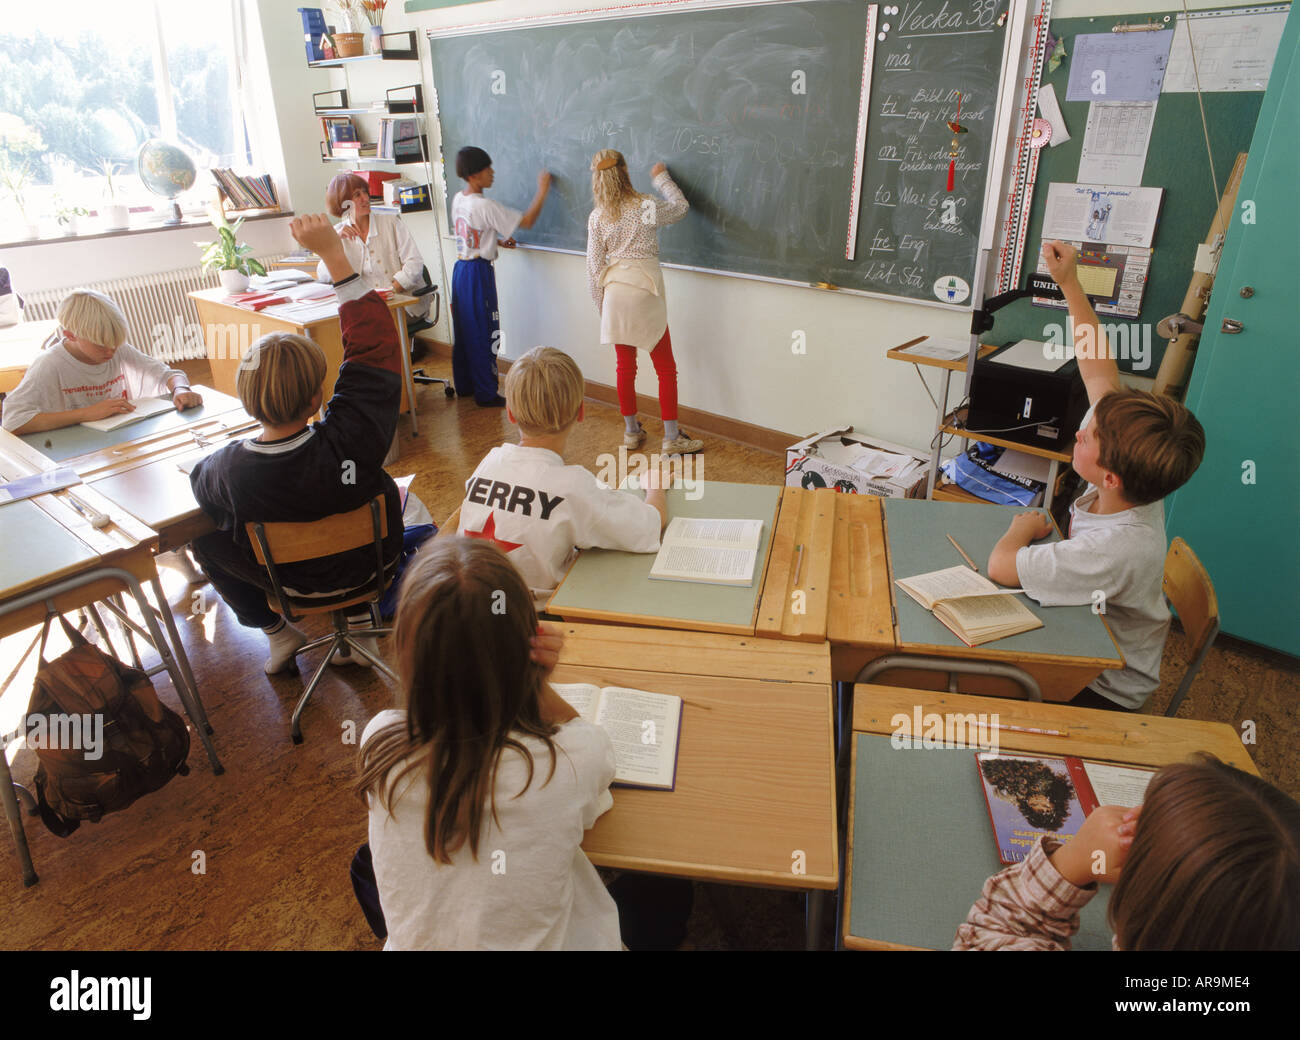 Students In 5th Grade Swedish Classroom Writing On Blackboard During Stock Photo Royalty Free